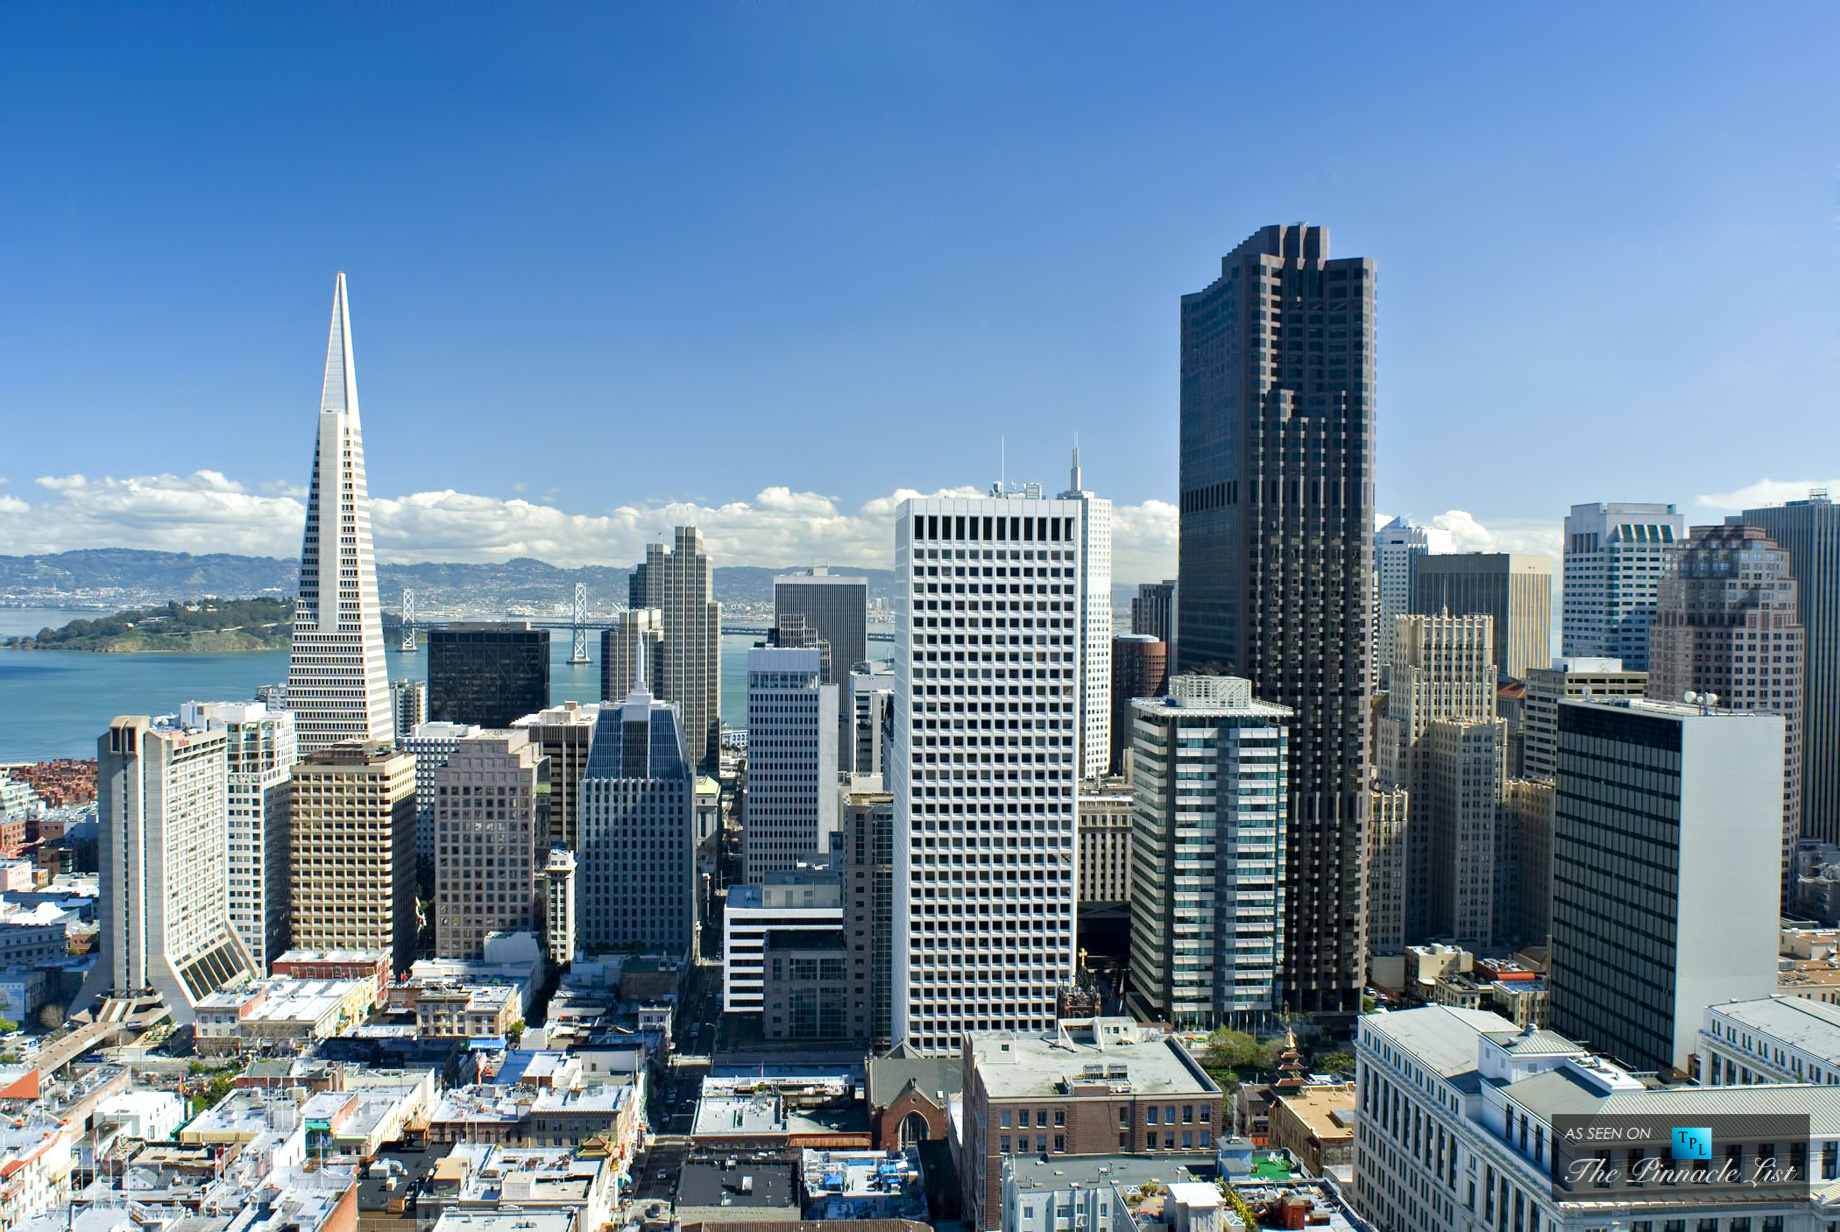 San Francisco, CA - Real Estate in the United States - Top 5 Most Expensive Regions to Live in America